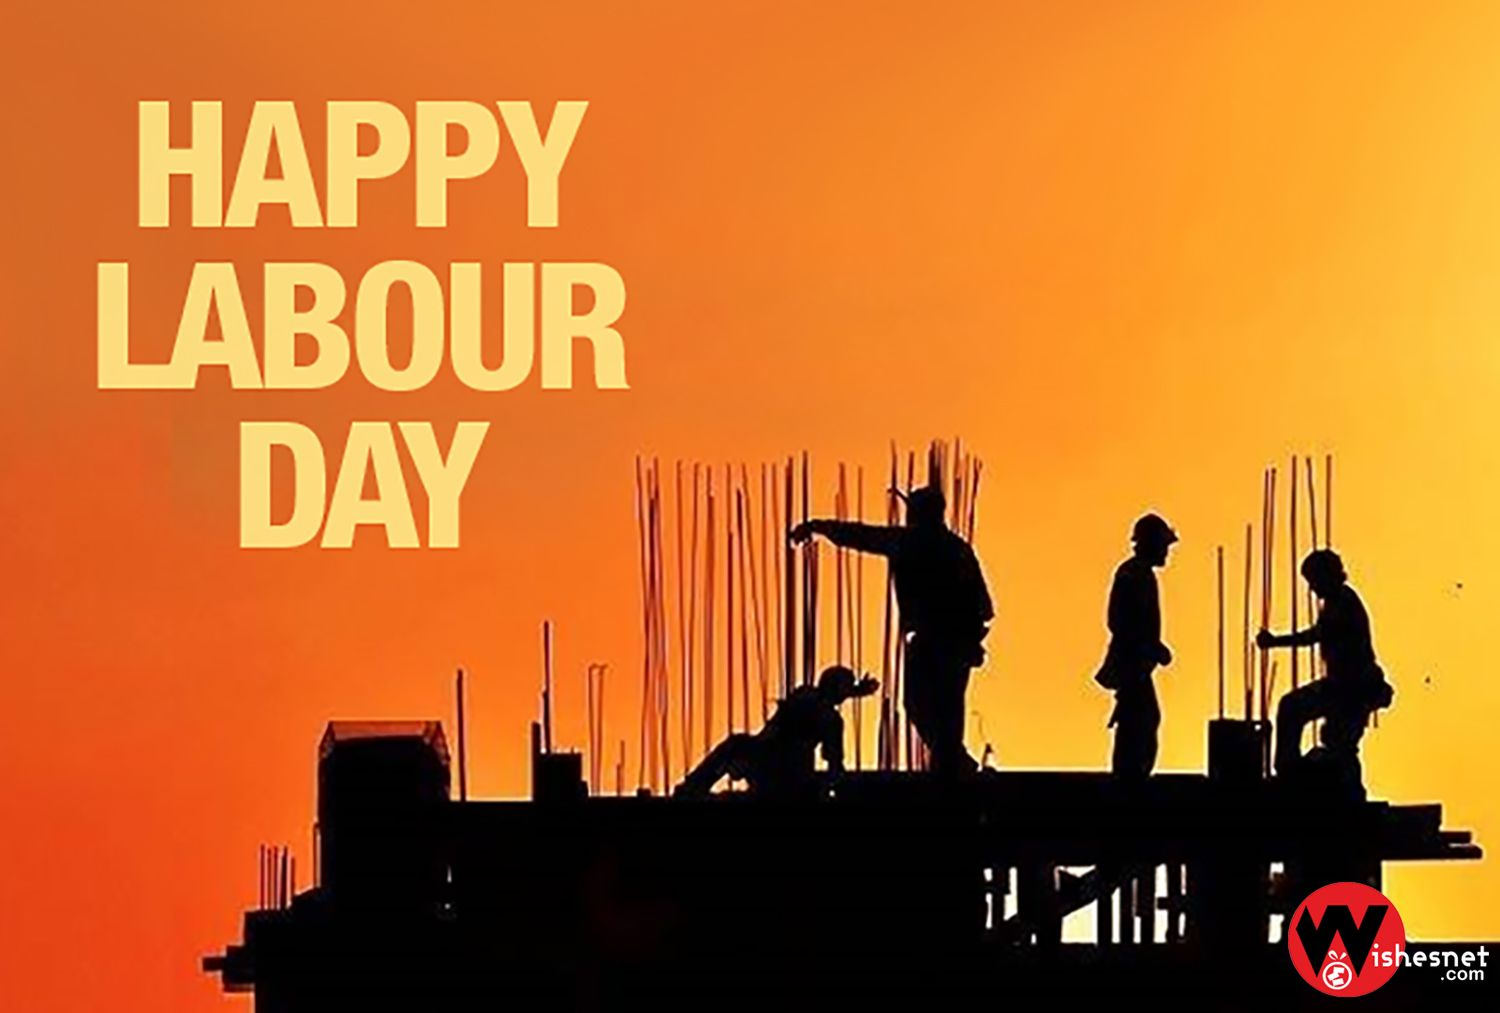 Labour Day in Pakistan free Labor Day